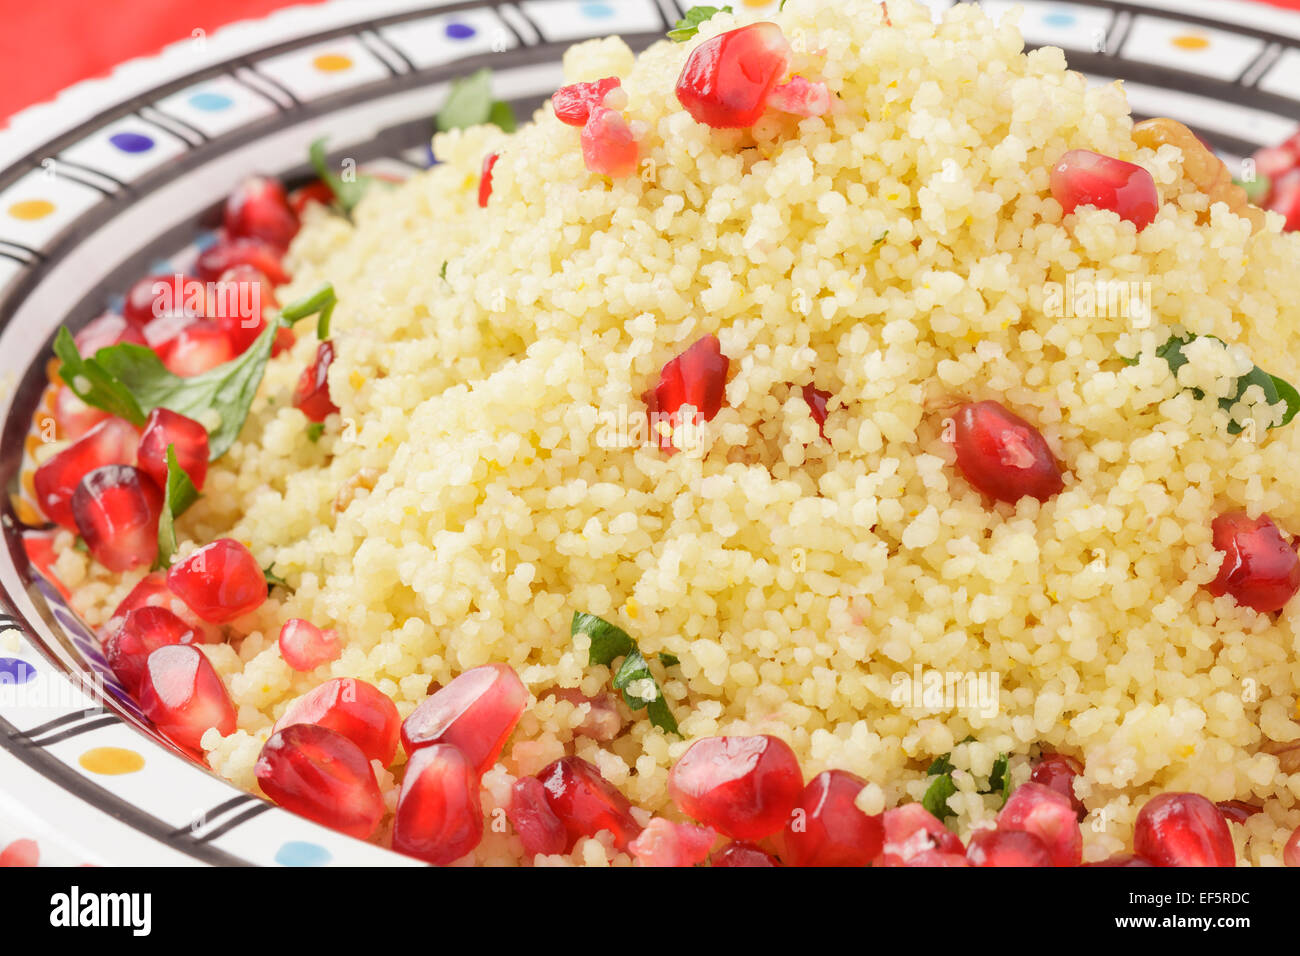 couscous with pomegranate seeds, walnuts and parsley Stock Photo